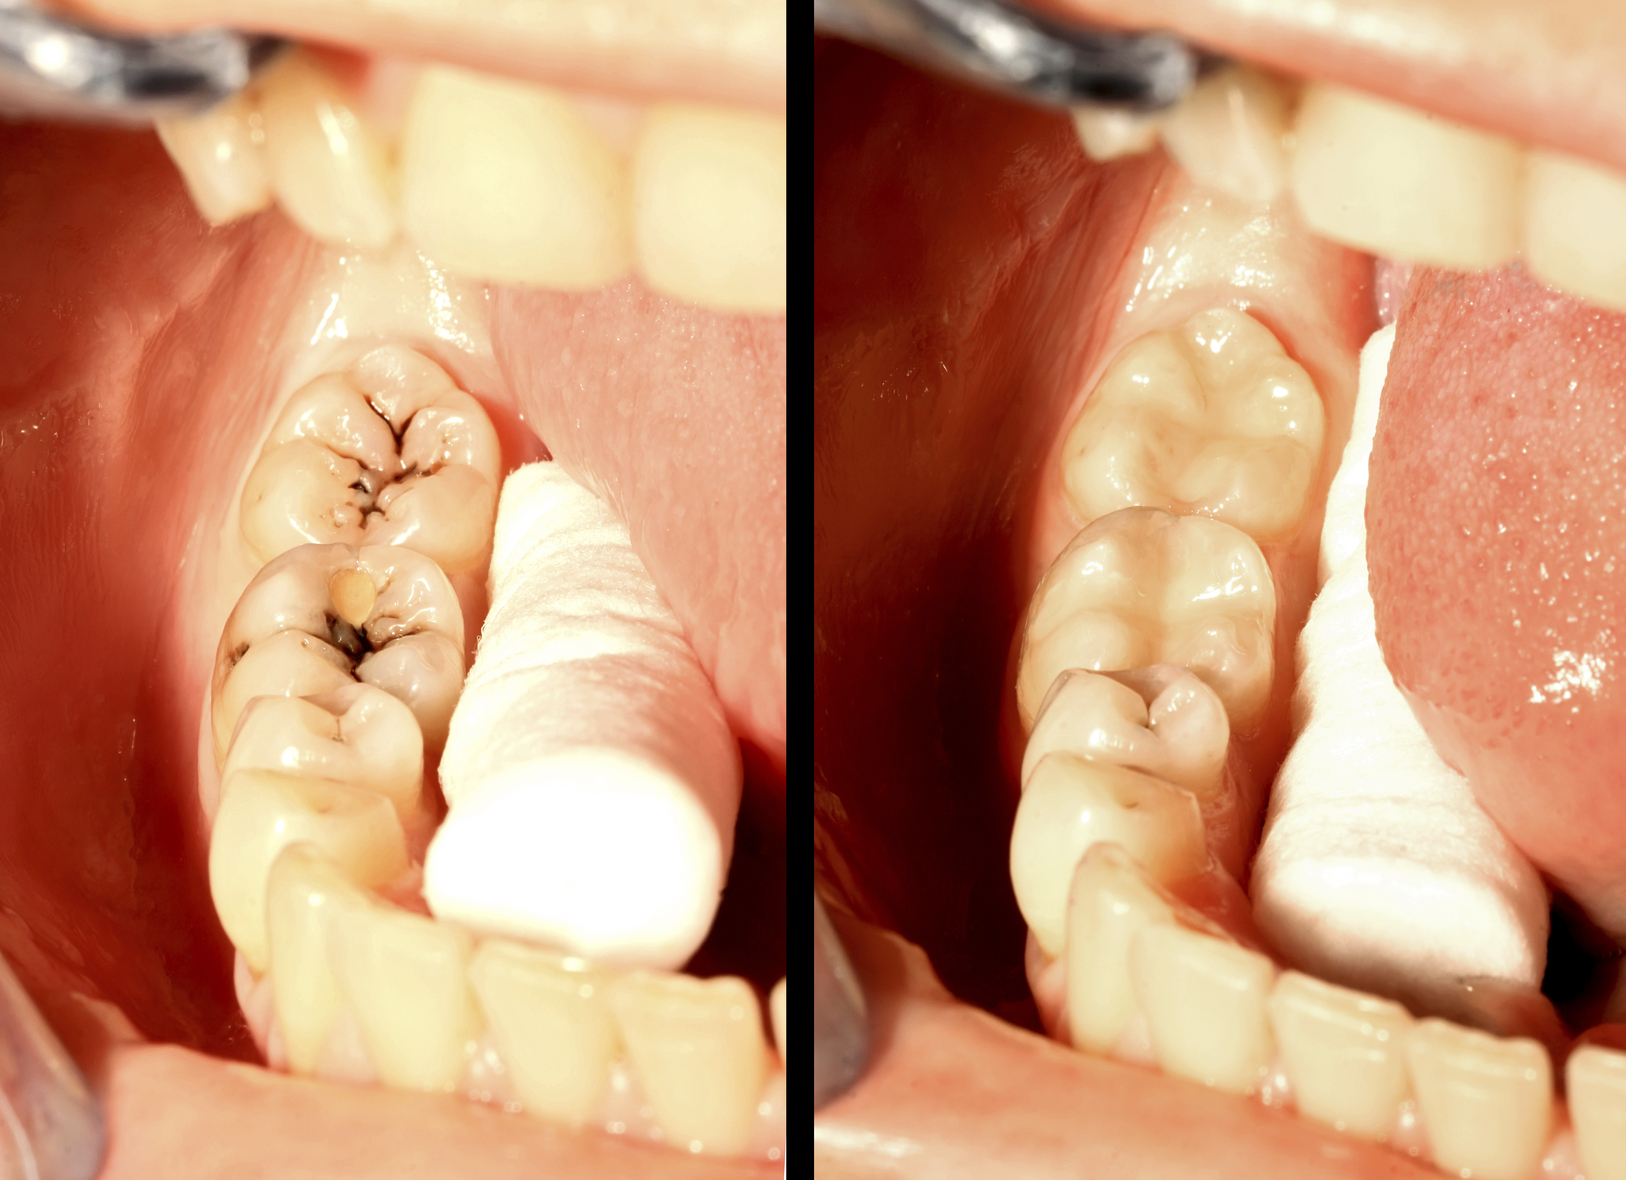 Molar teeth restoration with composite obturation, before and after